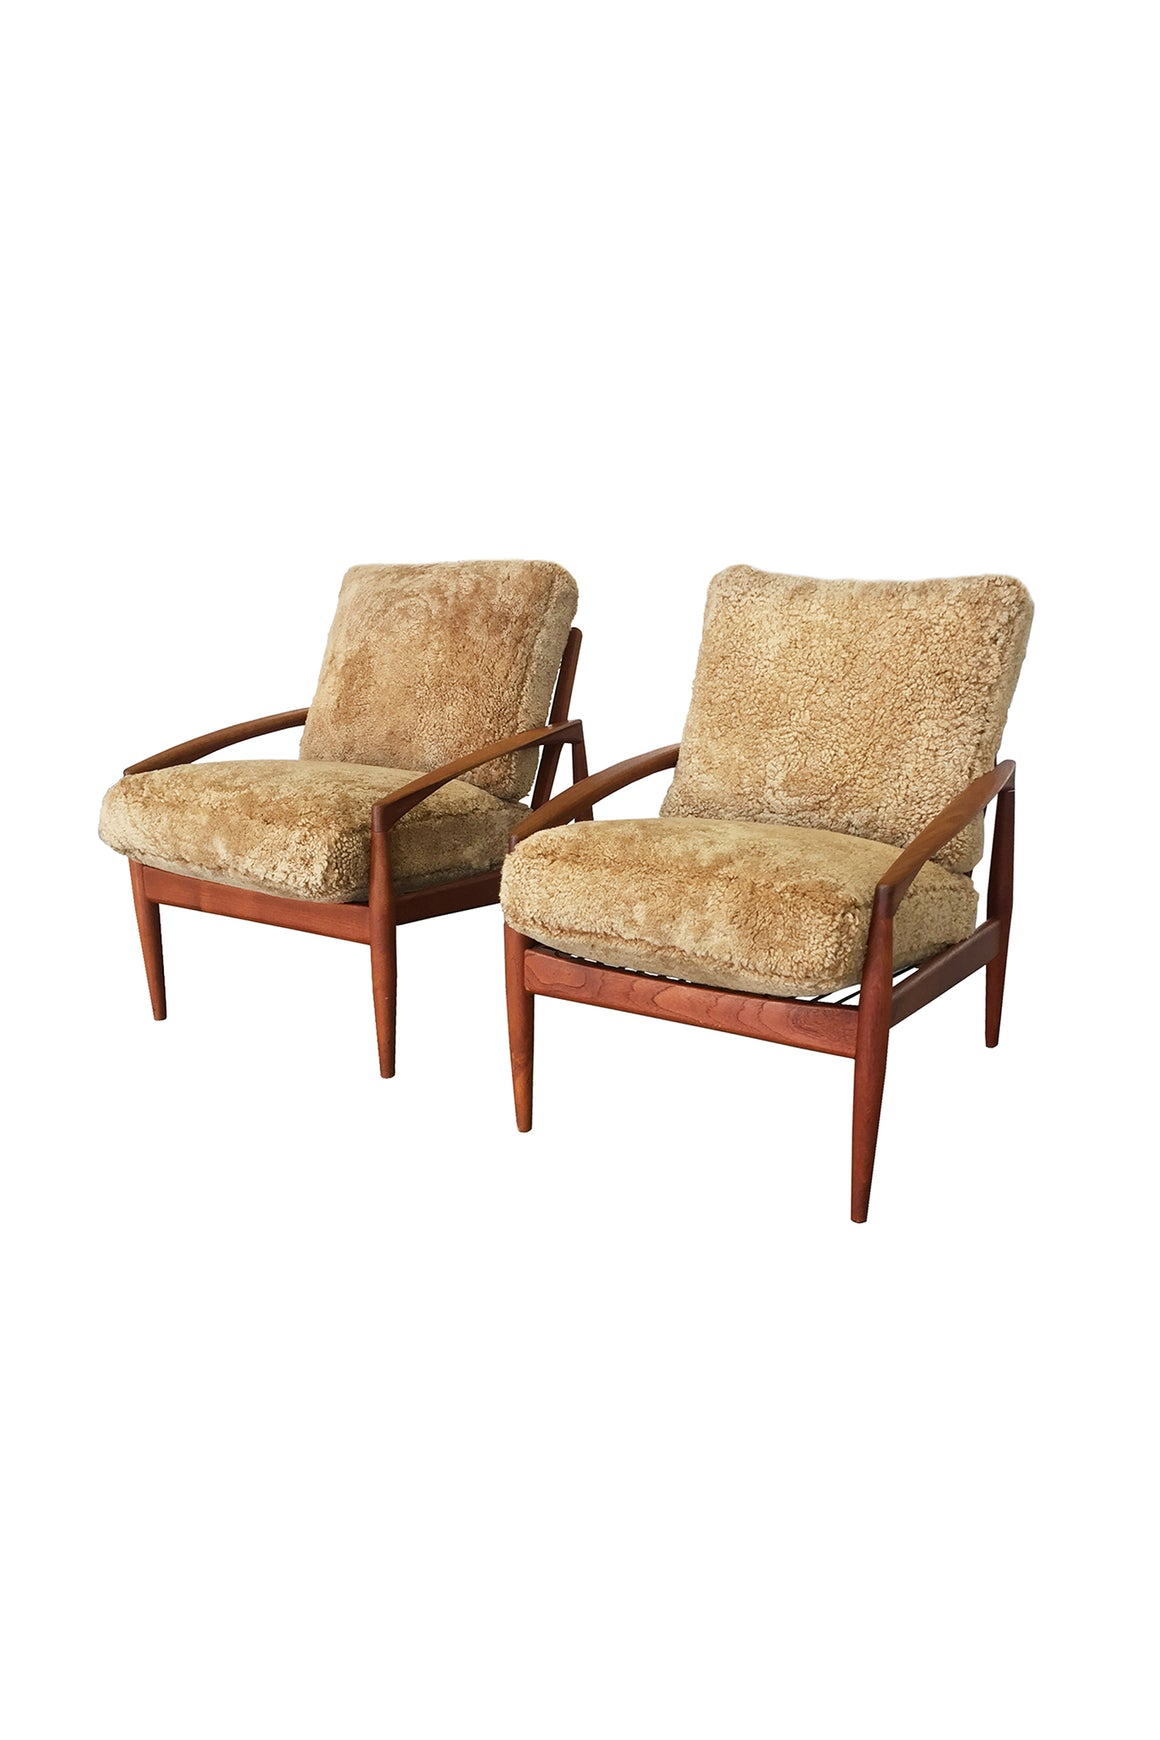 Kai Kristiansen Teak Easy Chairs With Custom Shearling Upholstery - a Pair